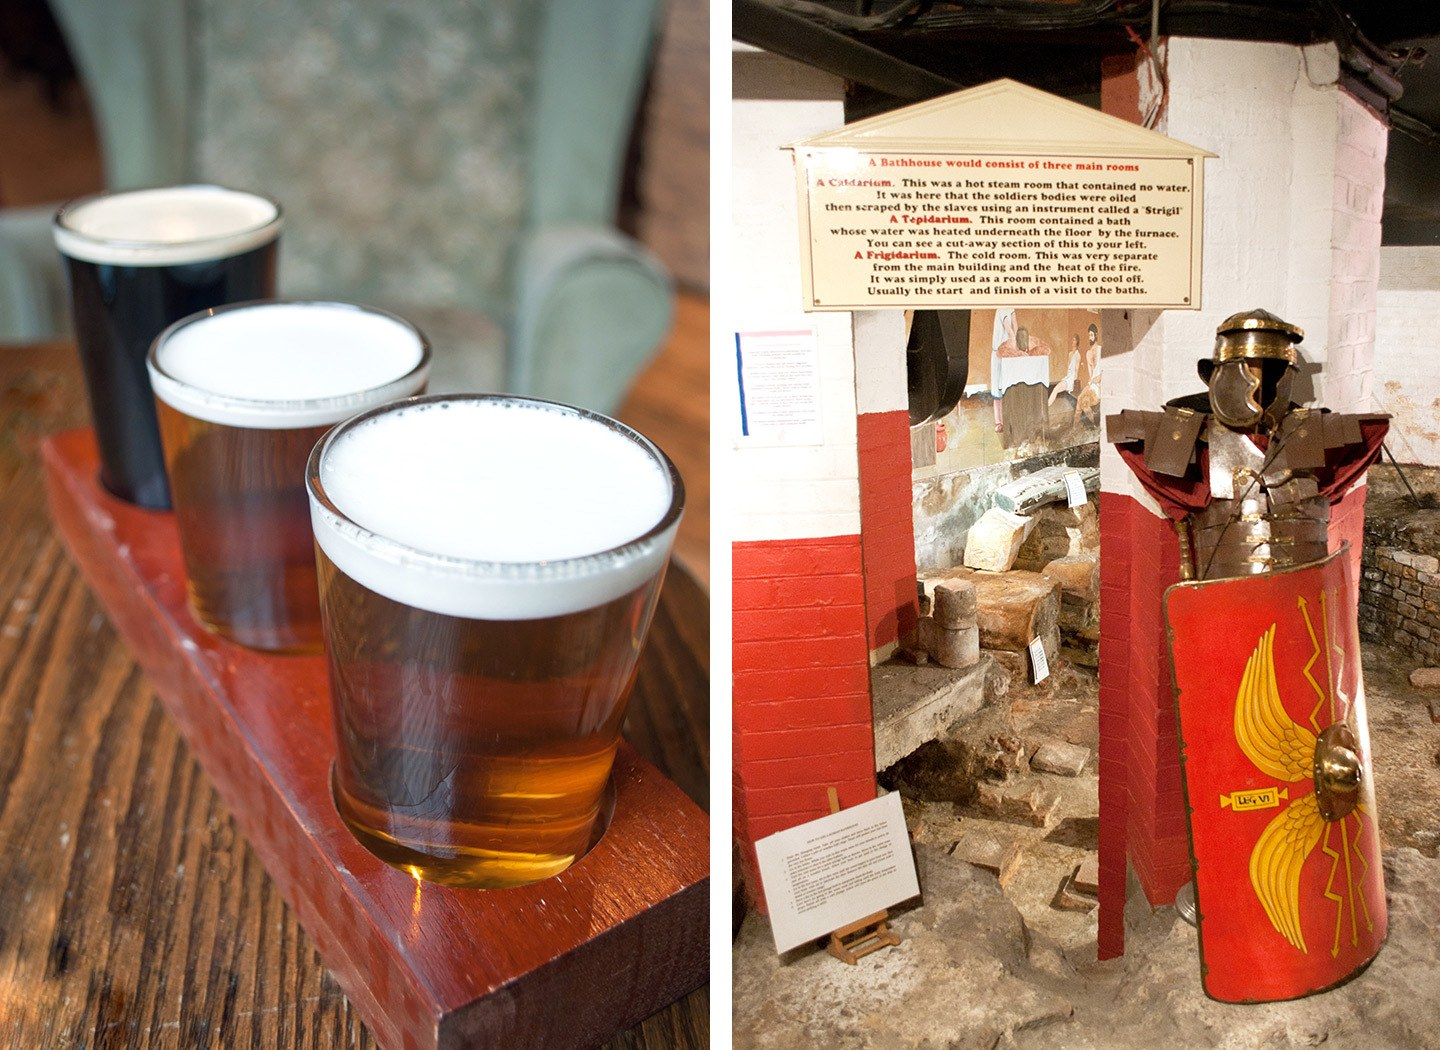 York Brewery beer tasting and the Roman baths in a pub basement